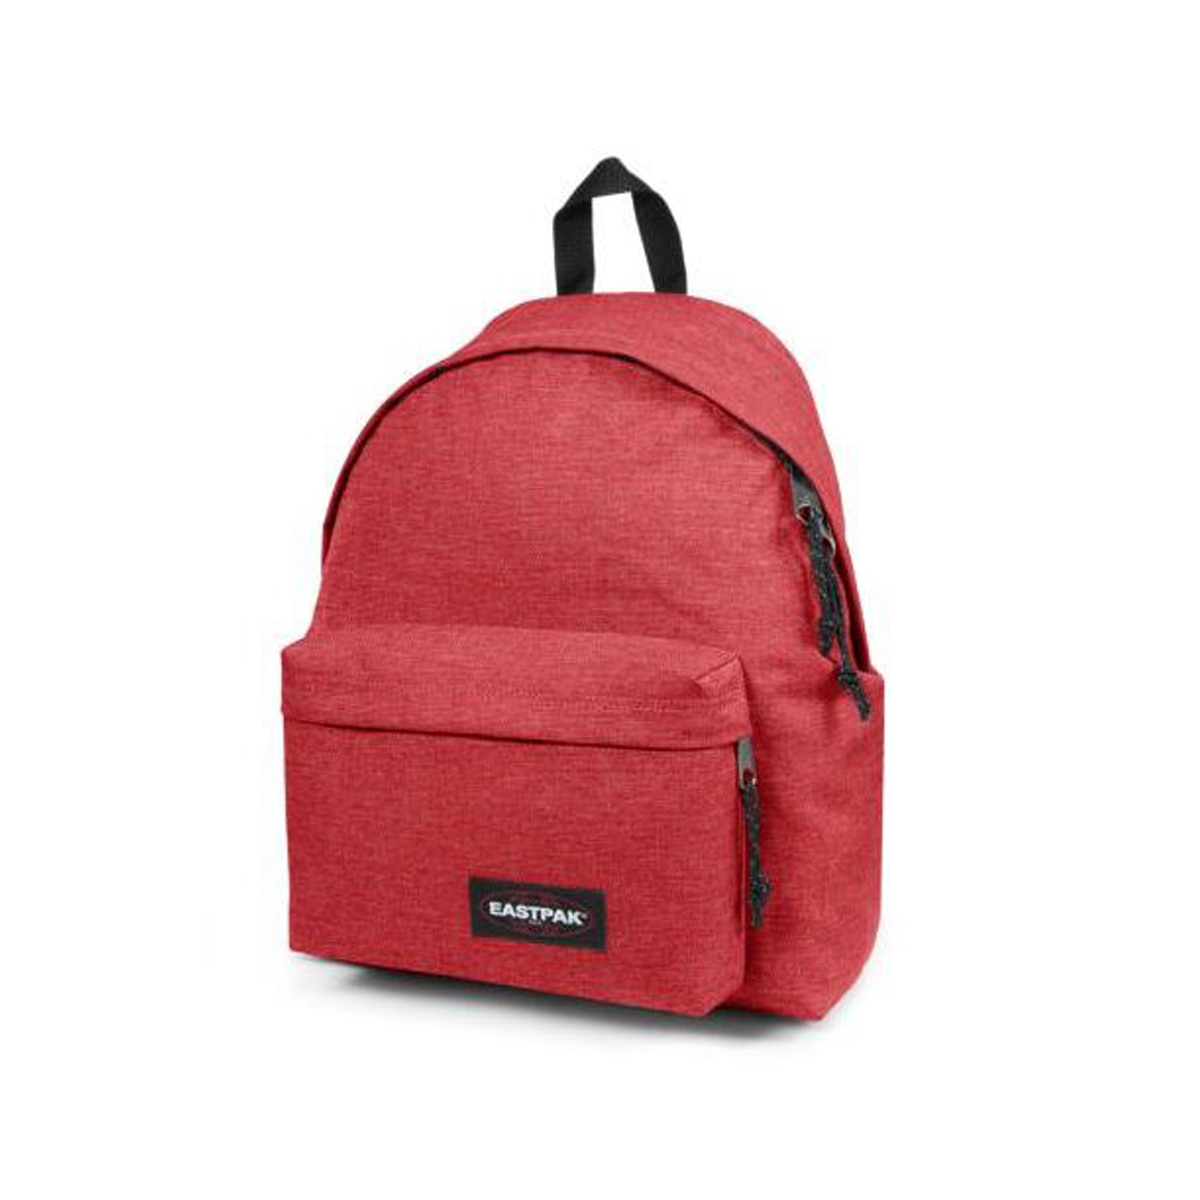 Eastpak Pinceaux Scolaires Tritoo Loisir Pinceaux Eastpak Tritoo Scolaires wEqEt7